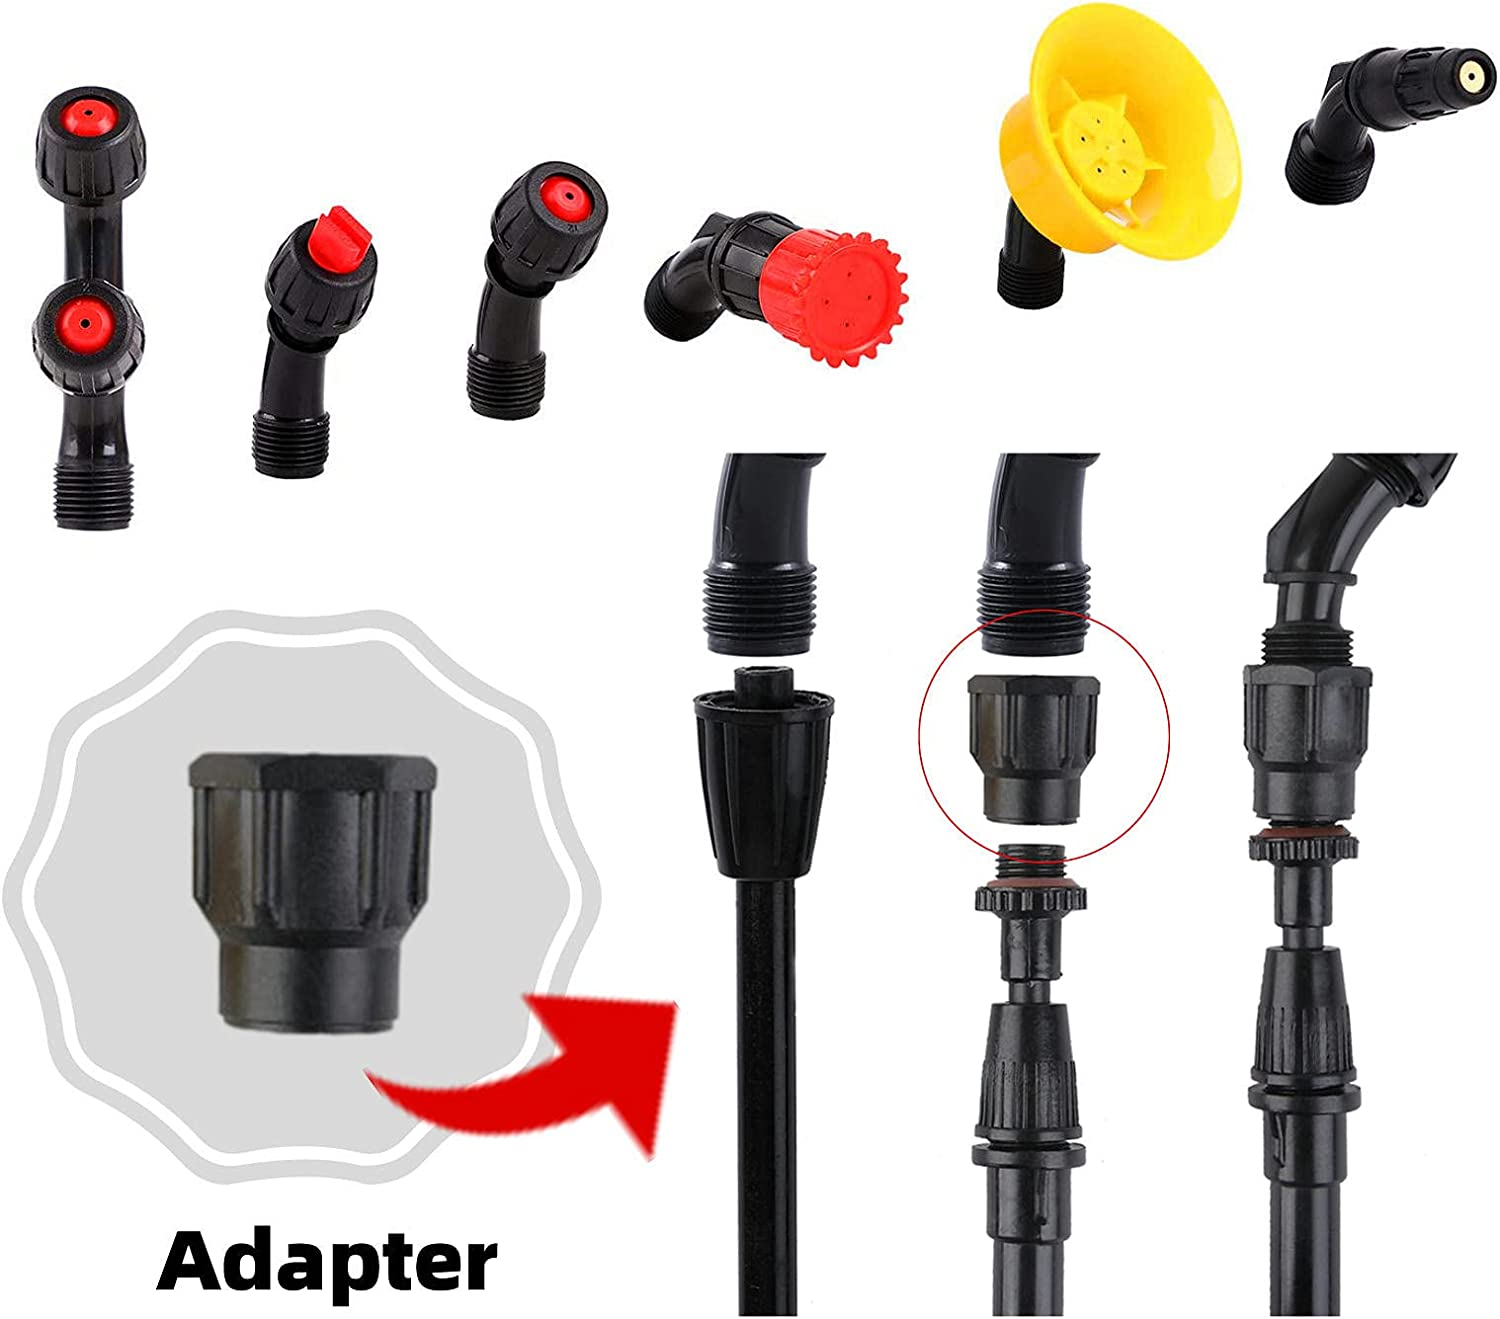 Aimela sprayer nozzle kit hollow cone nozzle 6 piece 80 degree angle fan spray suitable for sprayer and other tools